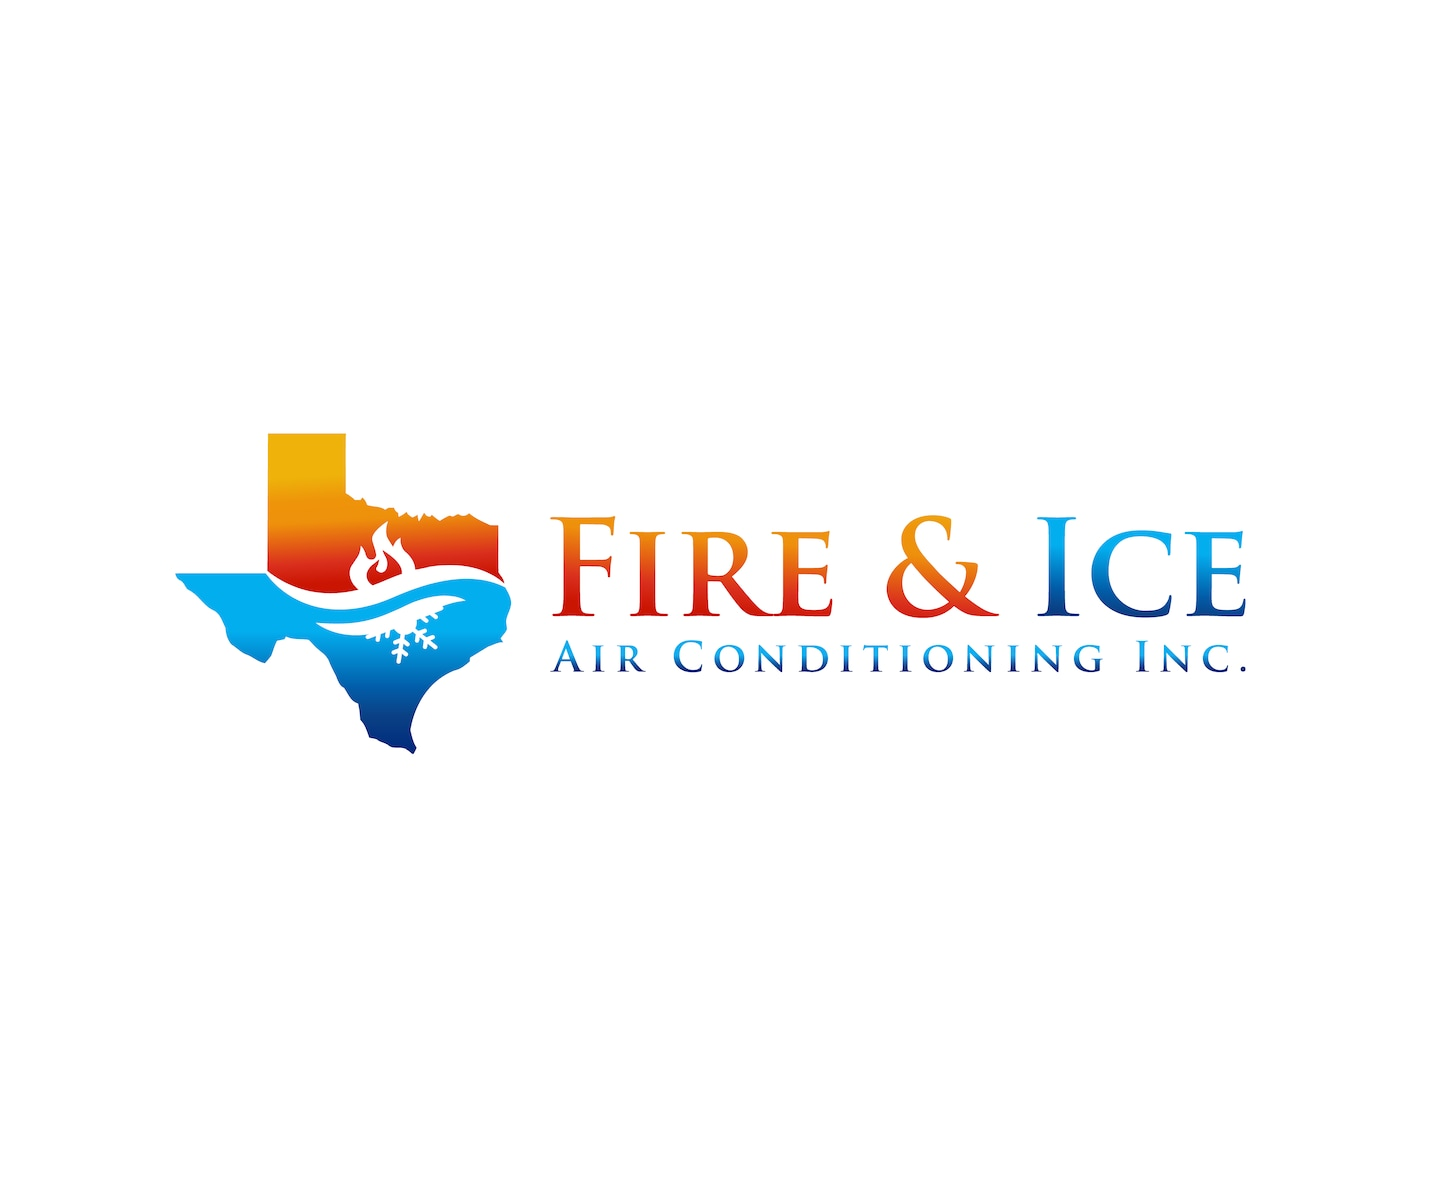 Fire and Ice Air Conditioning Inc. logo